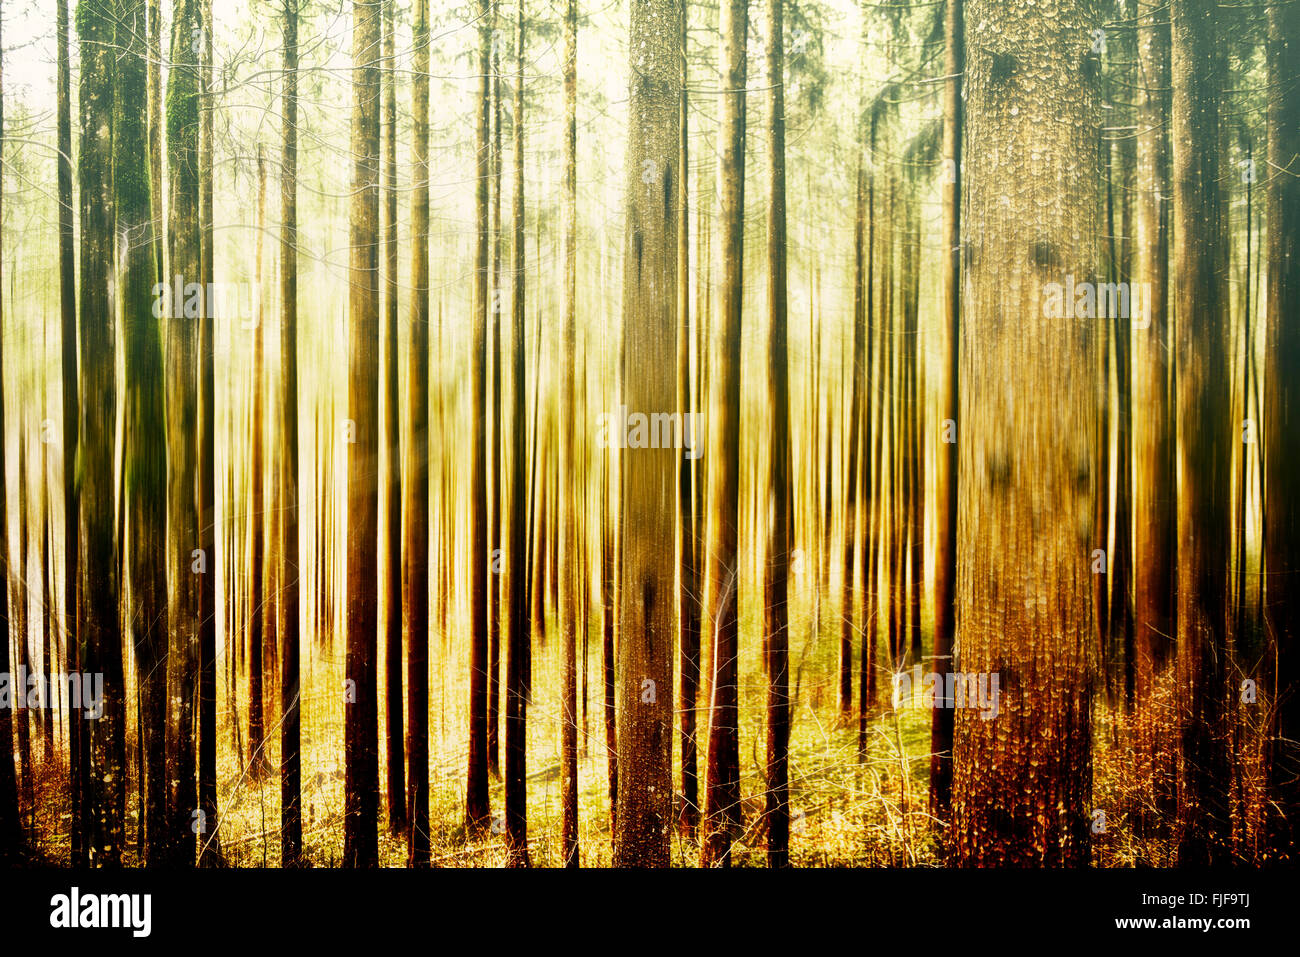 Abstract forest in motion blur, abstract colorful background - Stock Image